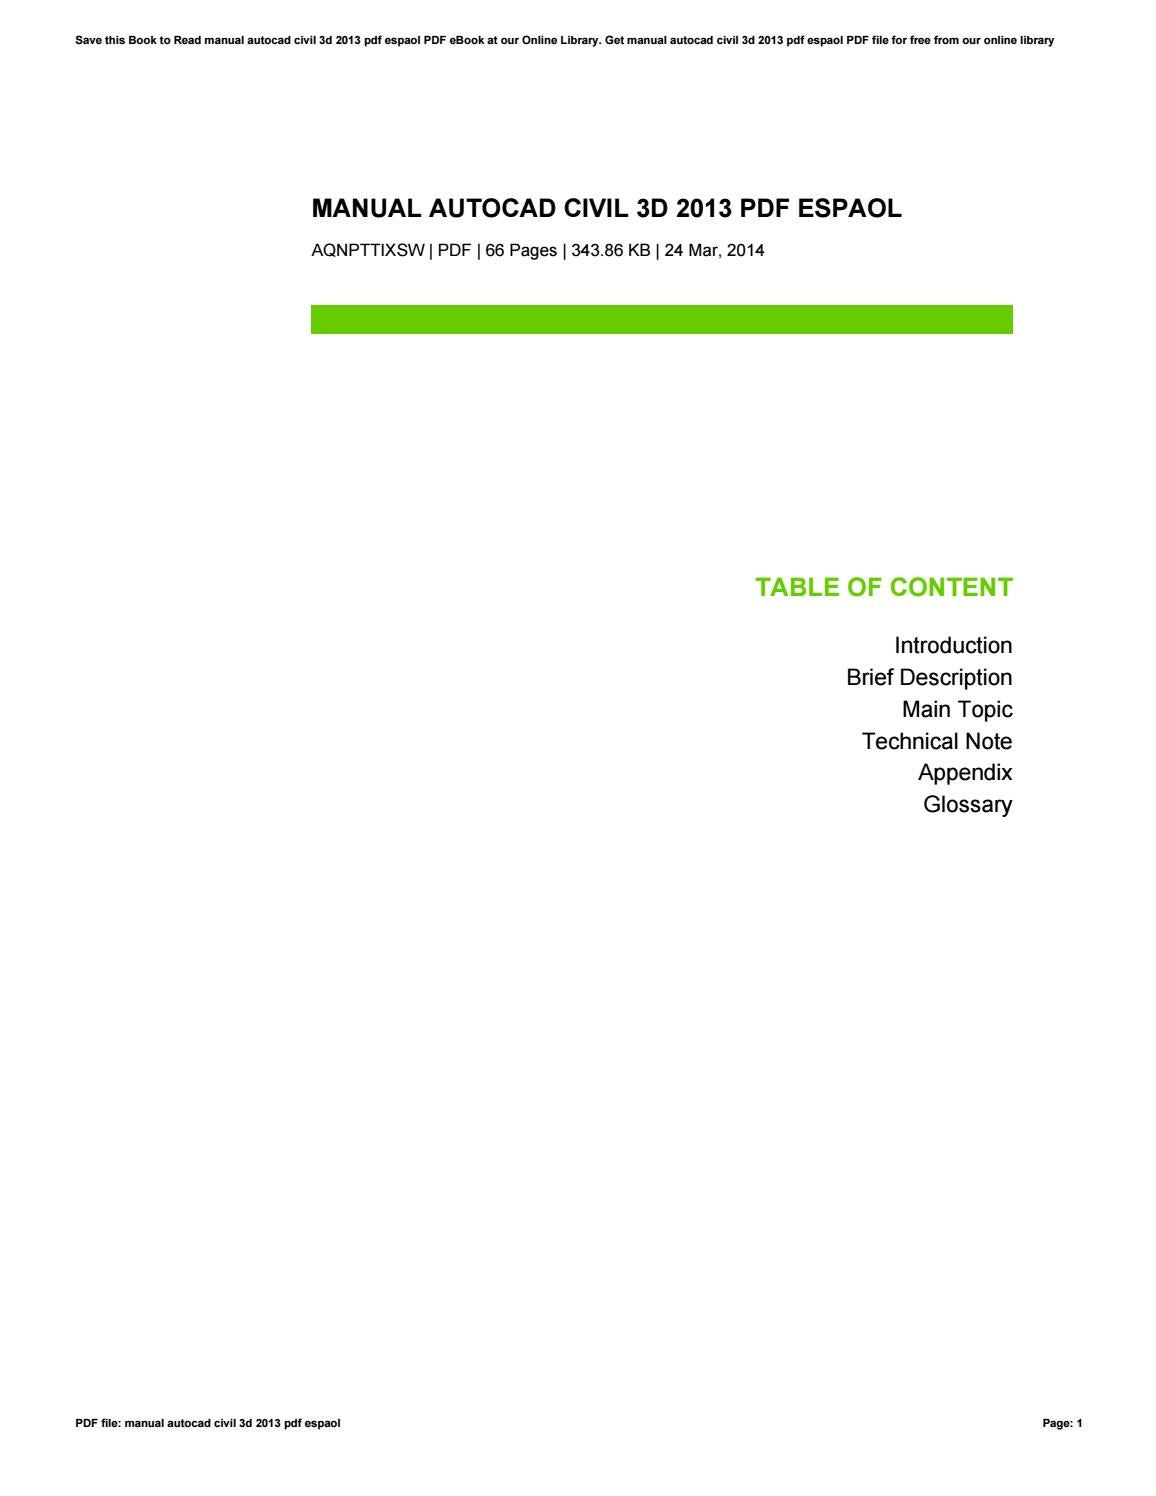 Manual autocad civil 3d 2013 pdf espaol by danielgreen2699 issuu baditri Image collections